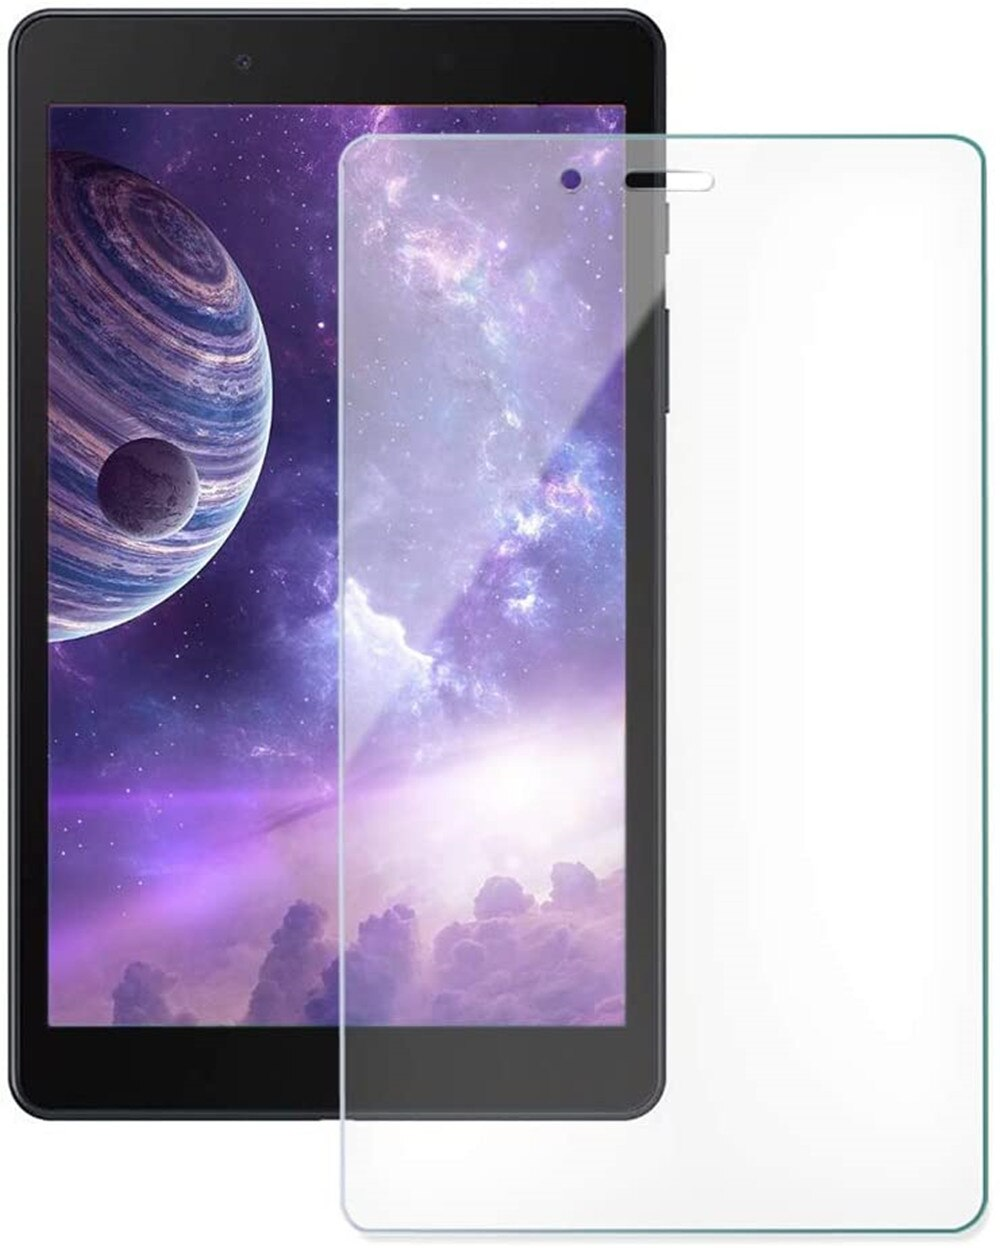 Фото - 9H Tempered Glass For Samsung Galaxy Tab A 8.0 2019 SM-T290 SM-T295 8.0 inch Screen Protector Protective Tablet Glass Film Guard for samsung galaxy tab a 8 0 2019 t290 t295 9h tempered glass screen protector sm t290 sm t295 8 0 inch protective tablet glass